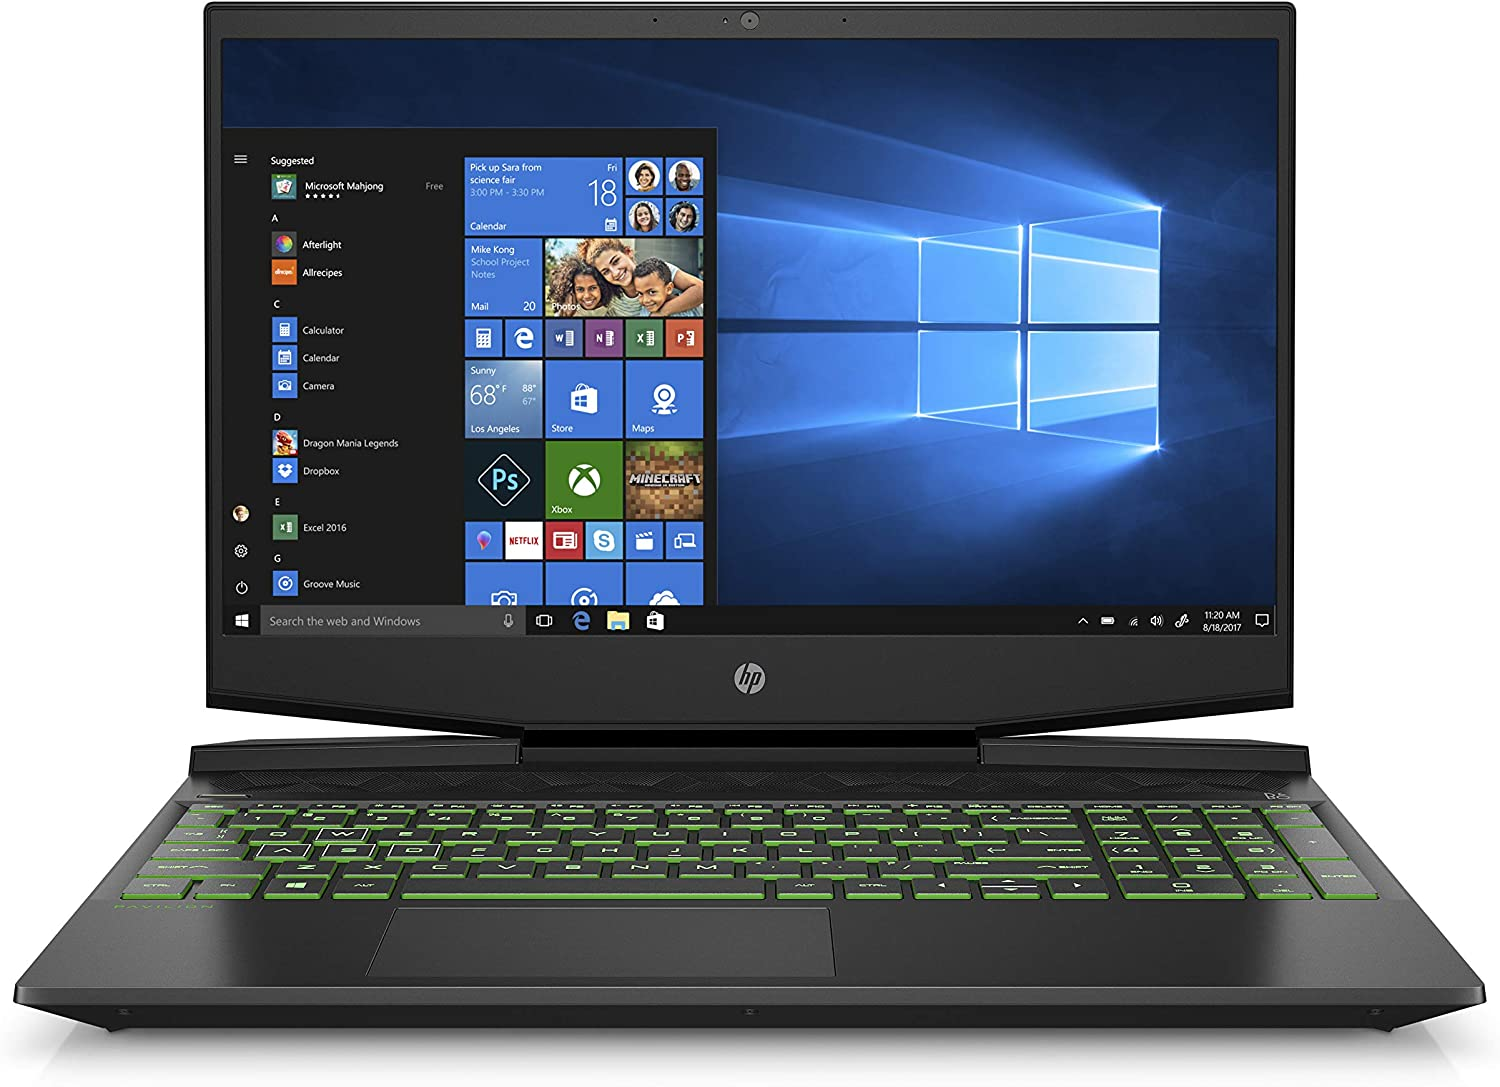 HP Pavilion Gaming 15-Inch Micro-EDGE Laptop, Intel Core i5-9300H Processor, NVIDIA GeForce GTX 1650 (4 GB), 8 GB SDRAM, 256 GB SSD, Windows 10 Home (15-dk0020nr, Shadow Black/Acid Green)